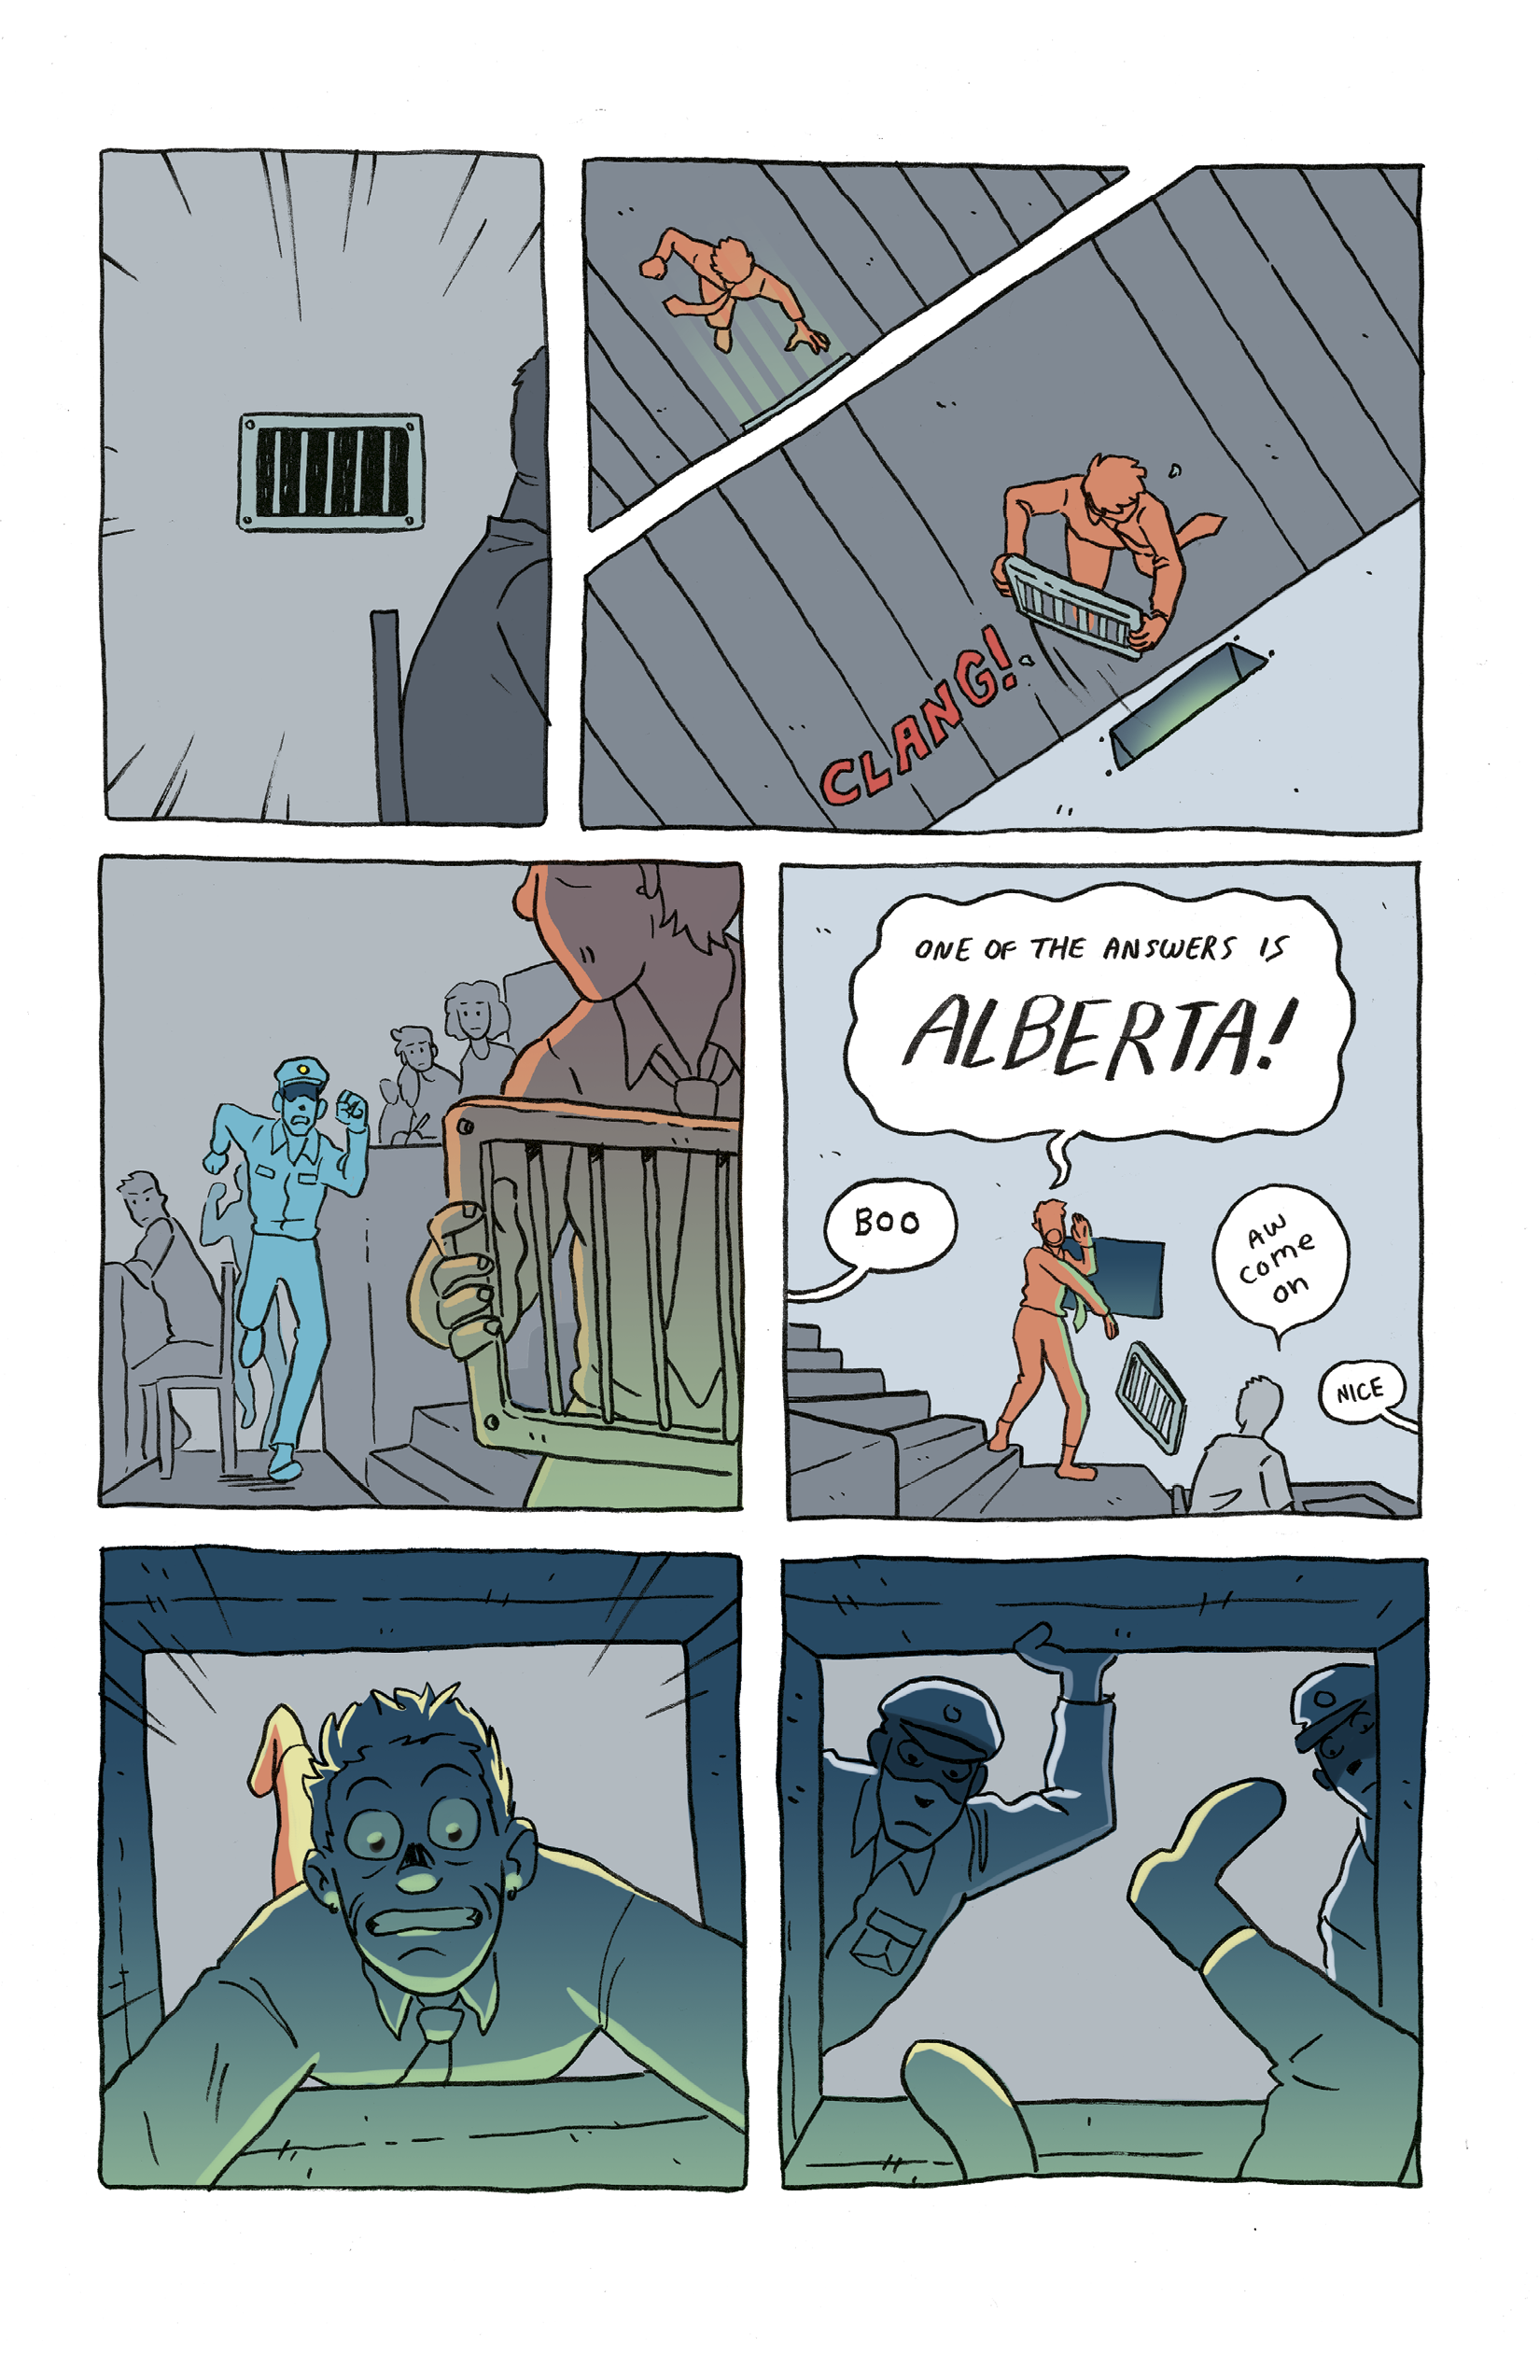 METANOIA_final_001_single_pages10.png